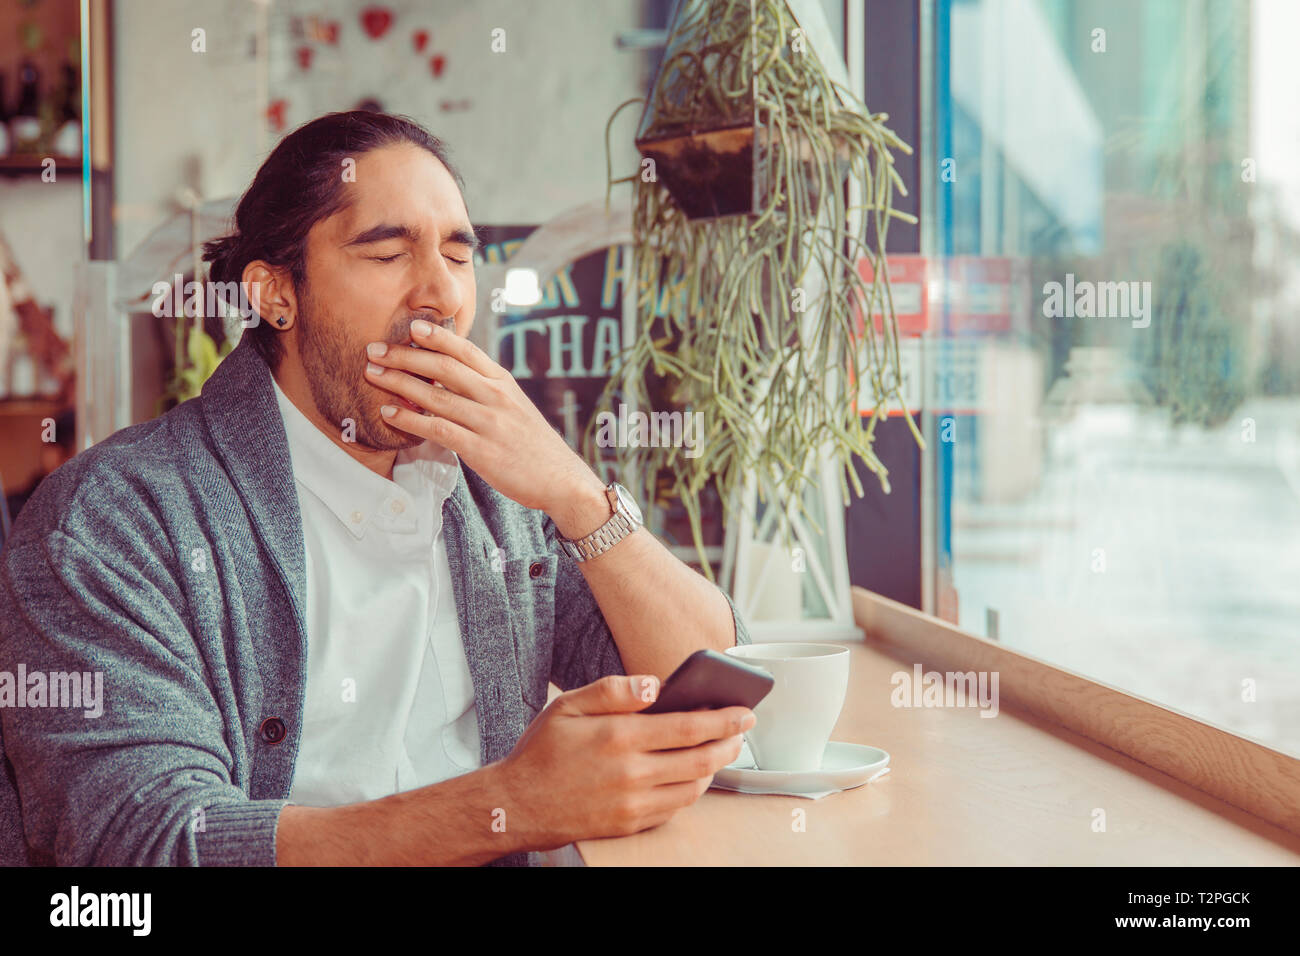 sleepy funny man, hand on mouth yawning looking at smart phone being bored by phone conversation, texting. Closeup portrait of a guy wearing casual we - Stock Image